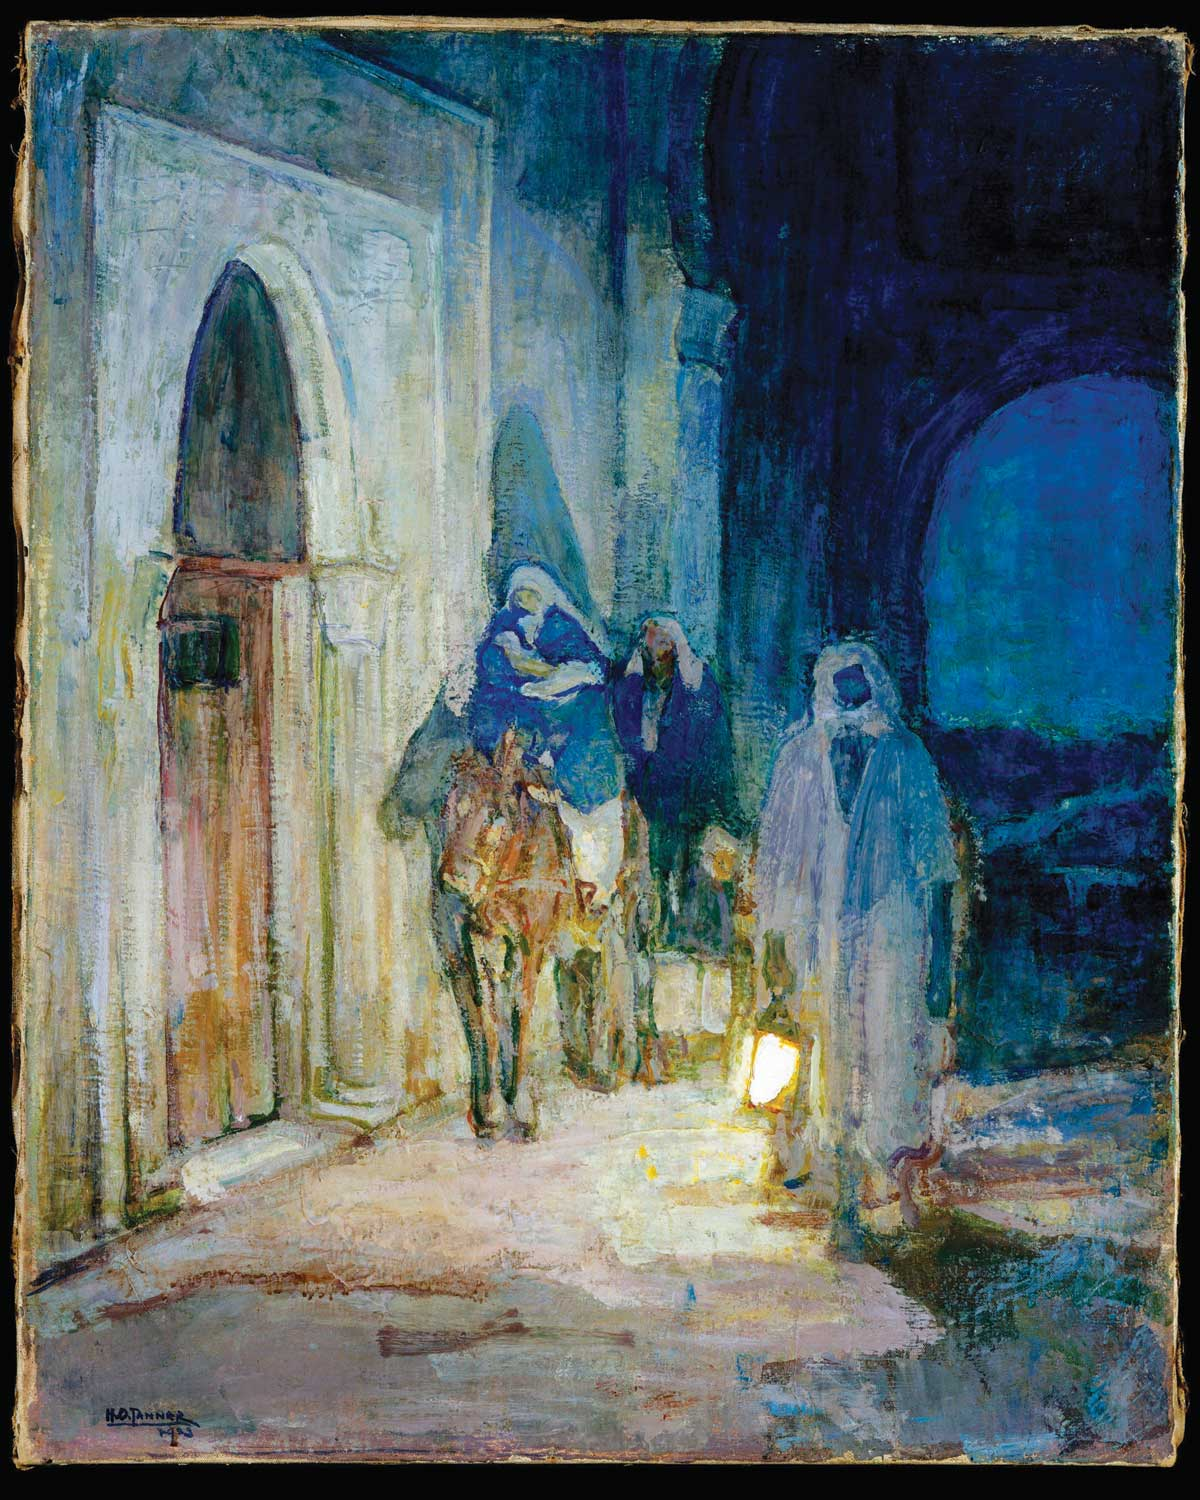 Henry Ossawa Tanner's The Flight into Egypt